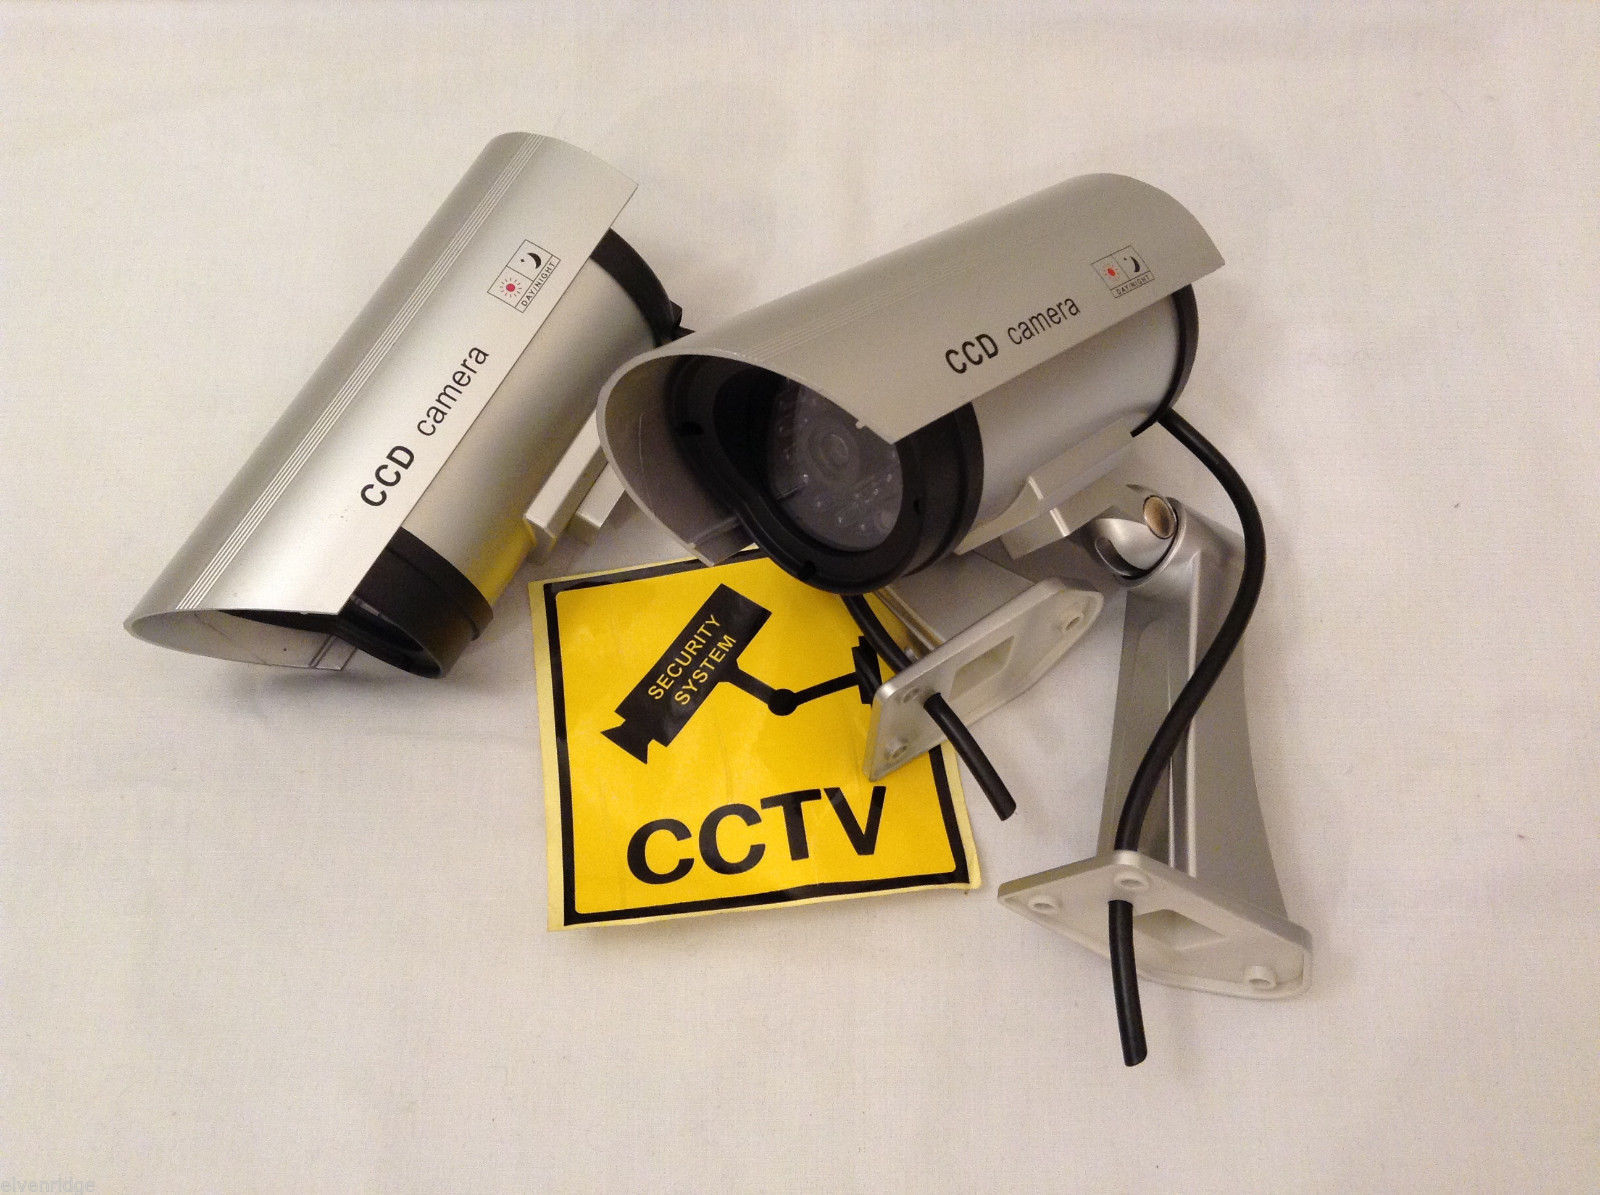 Outdoor False Security Cameras Deterent Silver set of 2 Dummy Camera